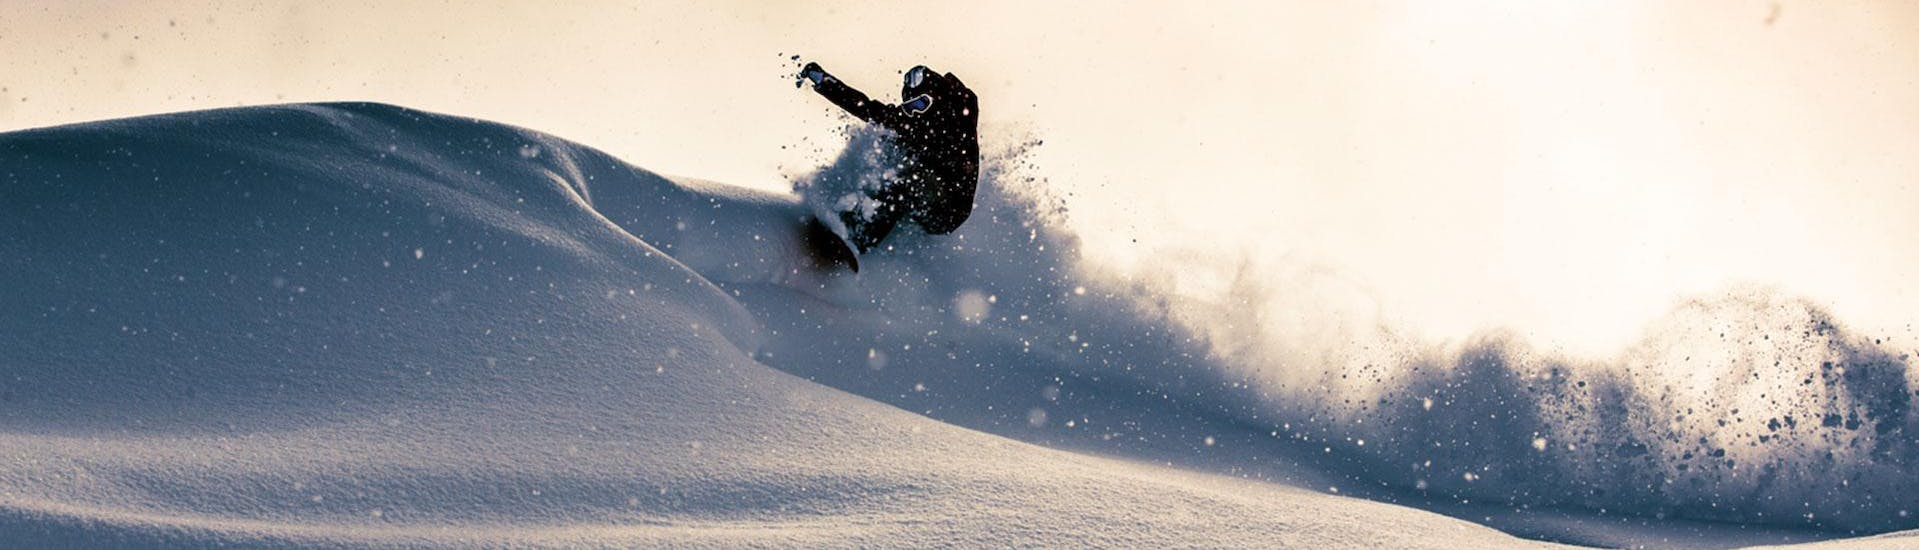 A snowboarder is riding through deep powder snow during his Off-Piste Snowboarding Lessons - All Levels with BOARD.AT.